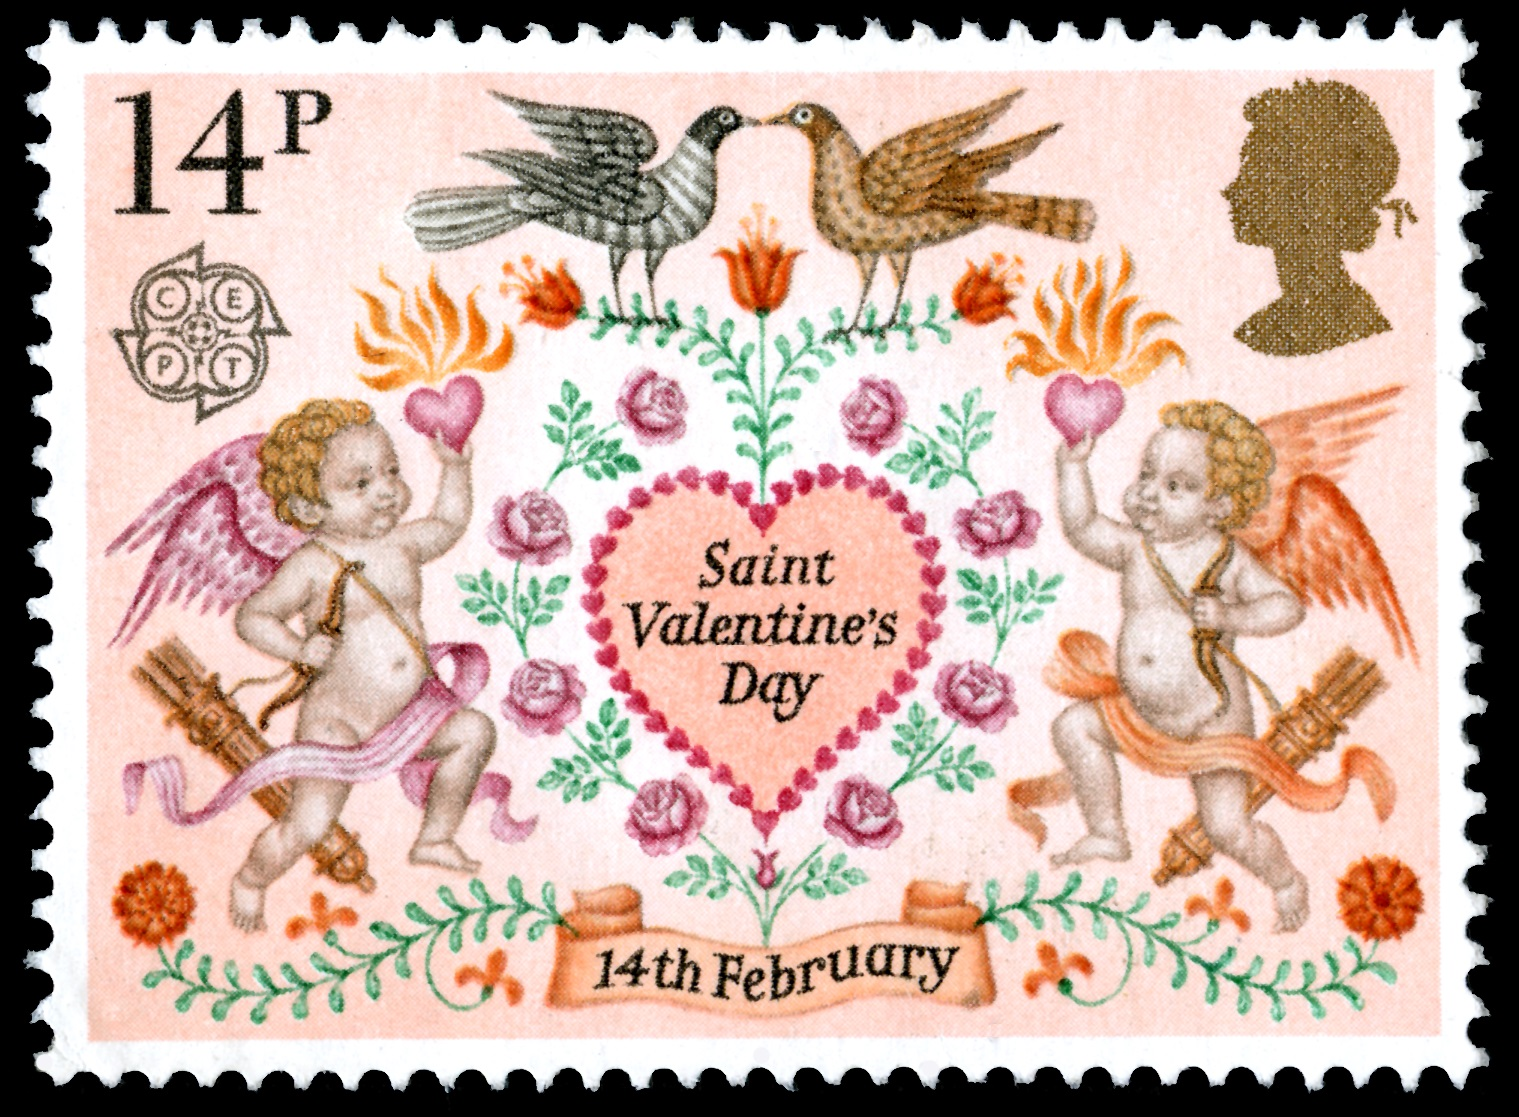 Valentine's Stamp depicting cherubs and birds with a value of 14 pence.